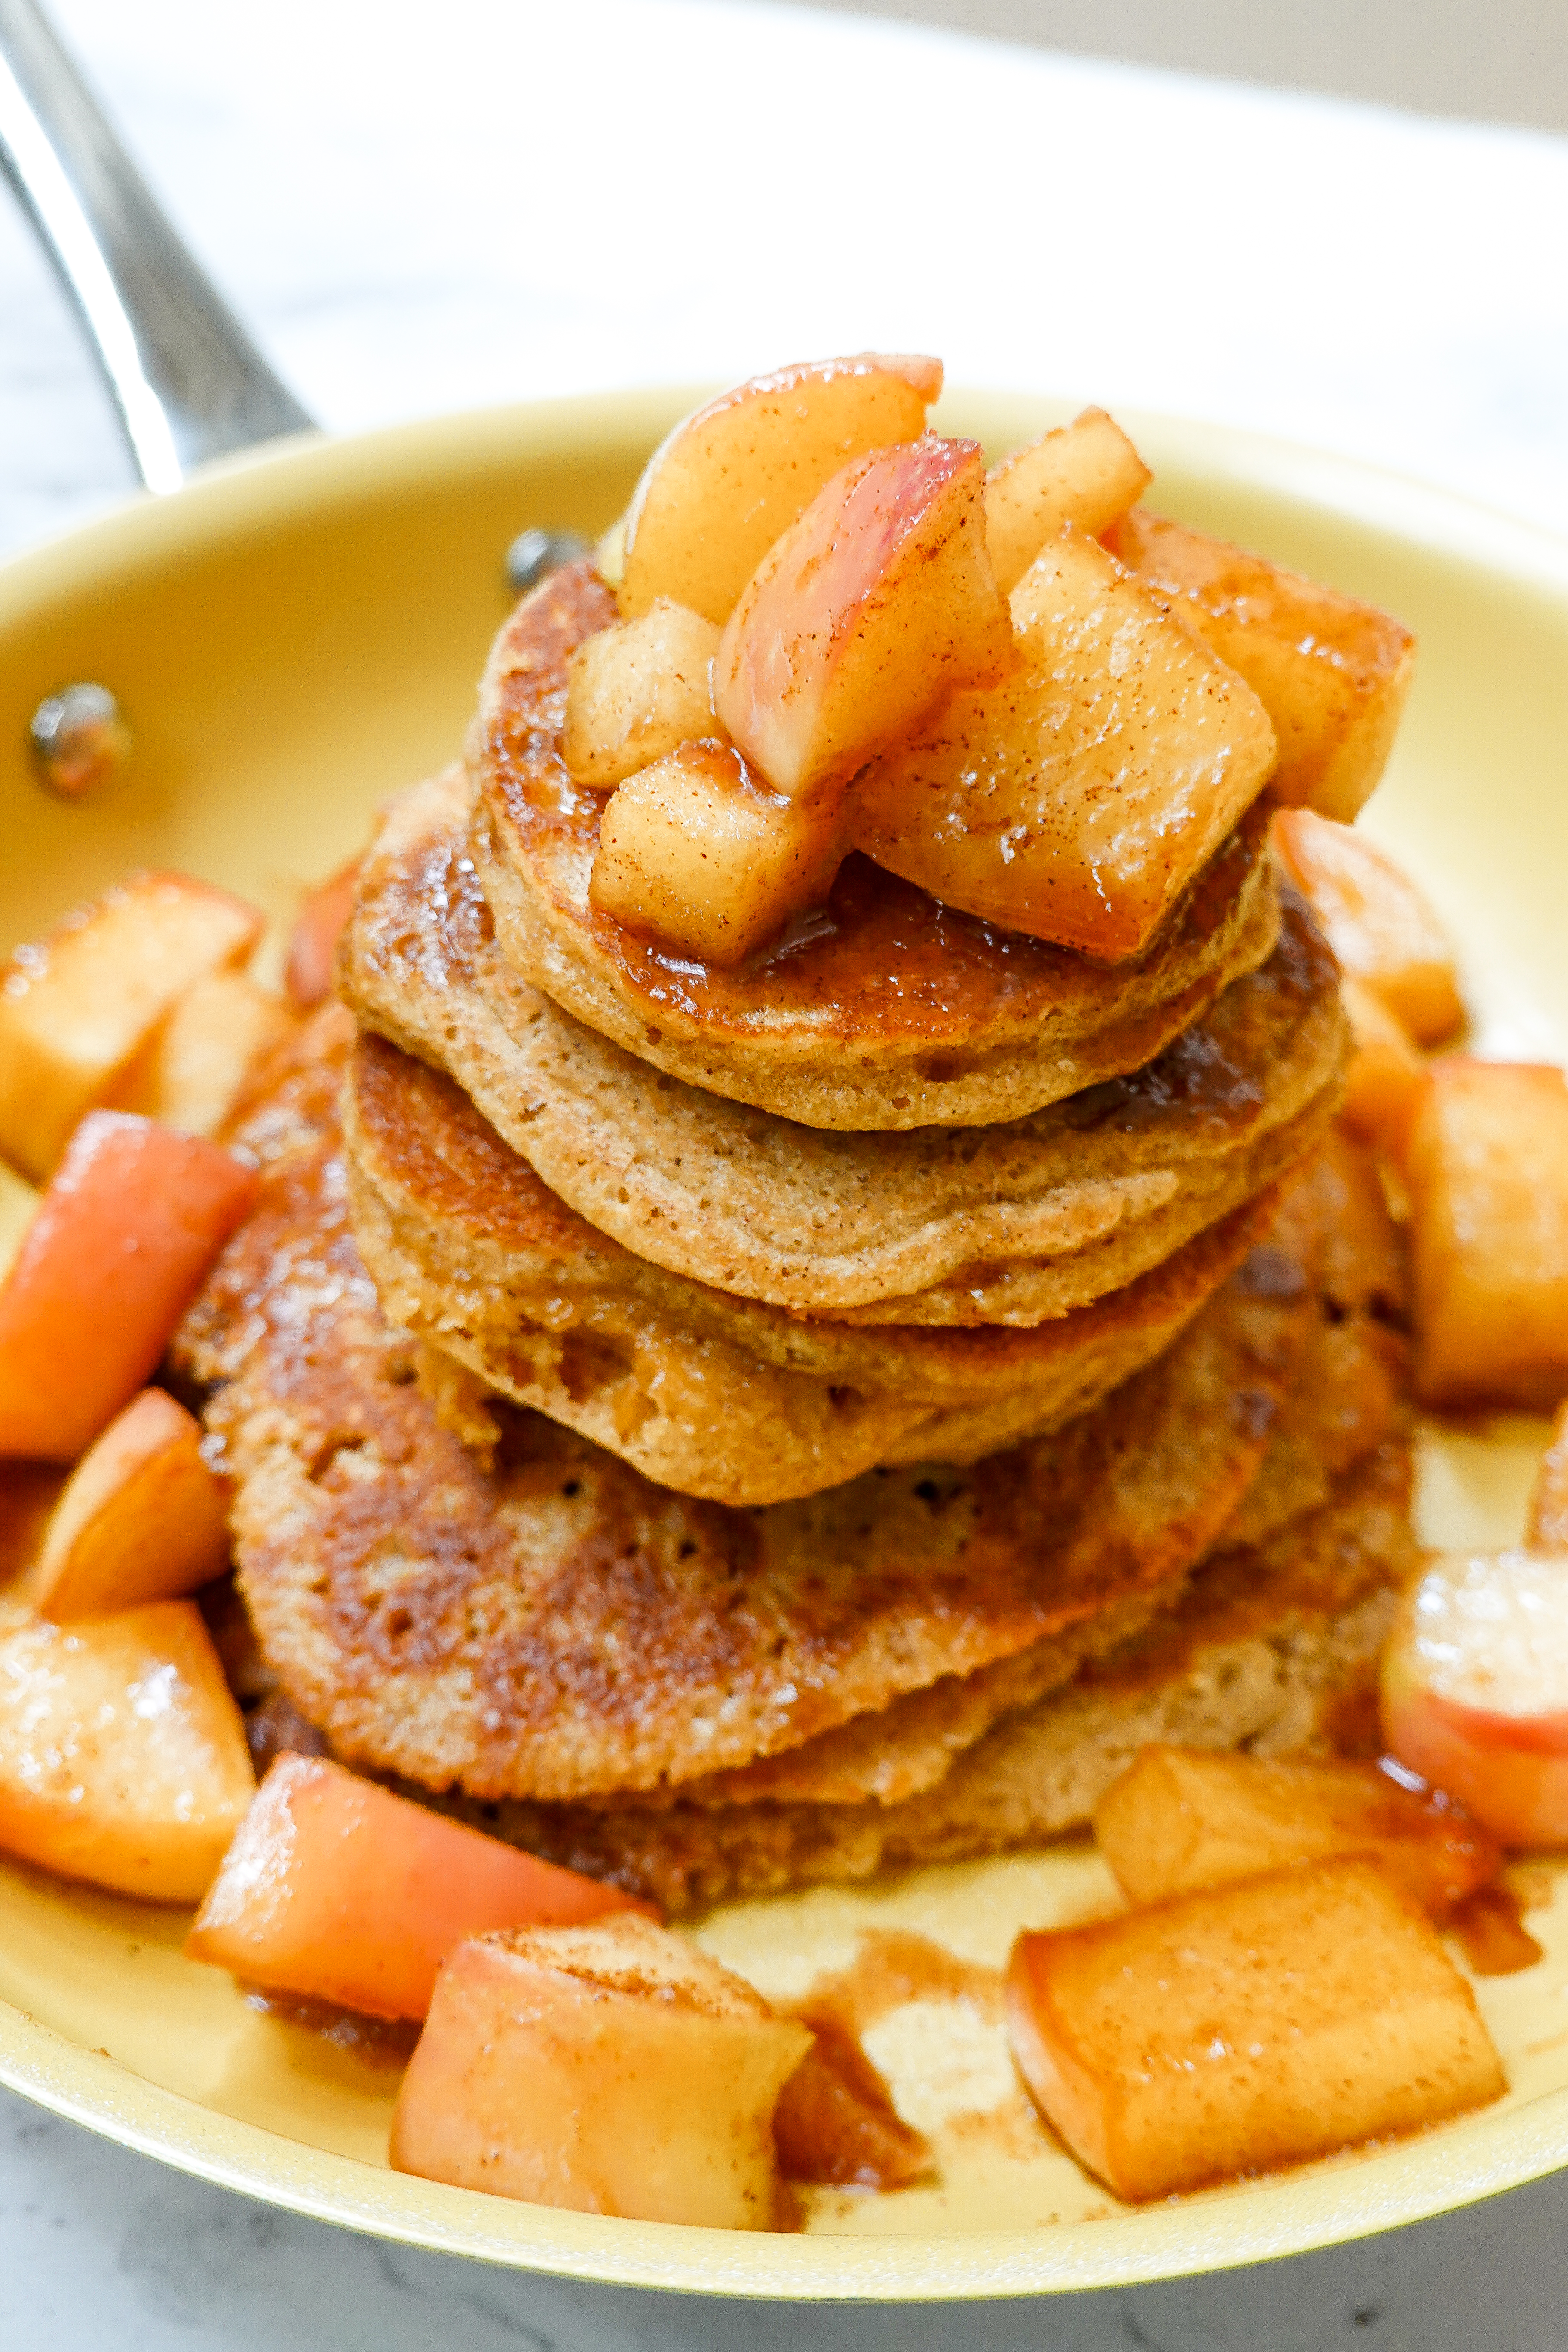 Cinnamon Apple Pancakes in my Tuxton Home skillets